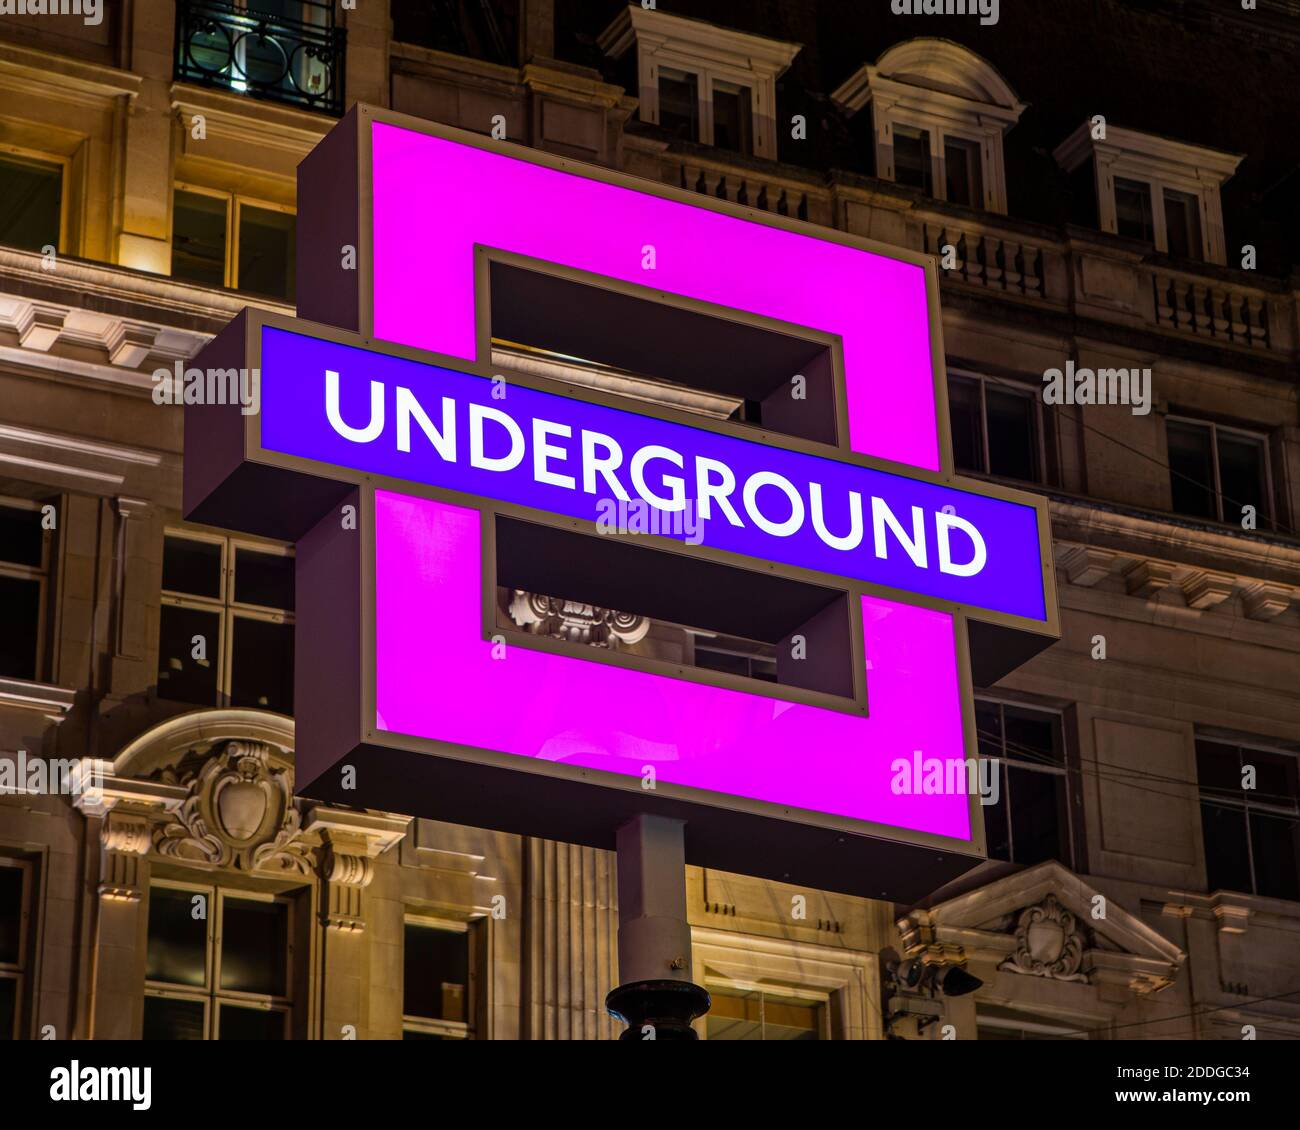 London, UK - November 22nd 2020: London Underground sign at Oxford Circus Station - changed to the square PlayStation controller symbol to promote the Stock Photo